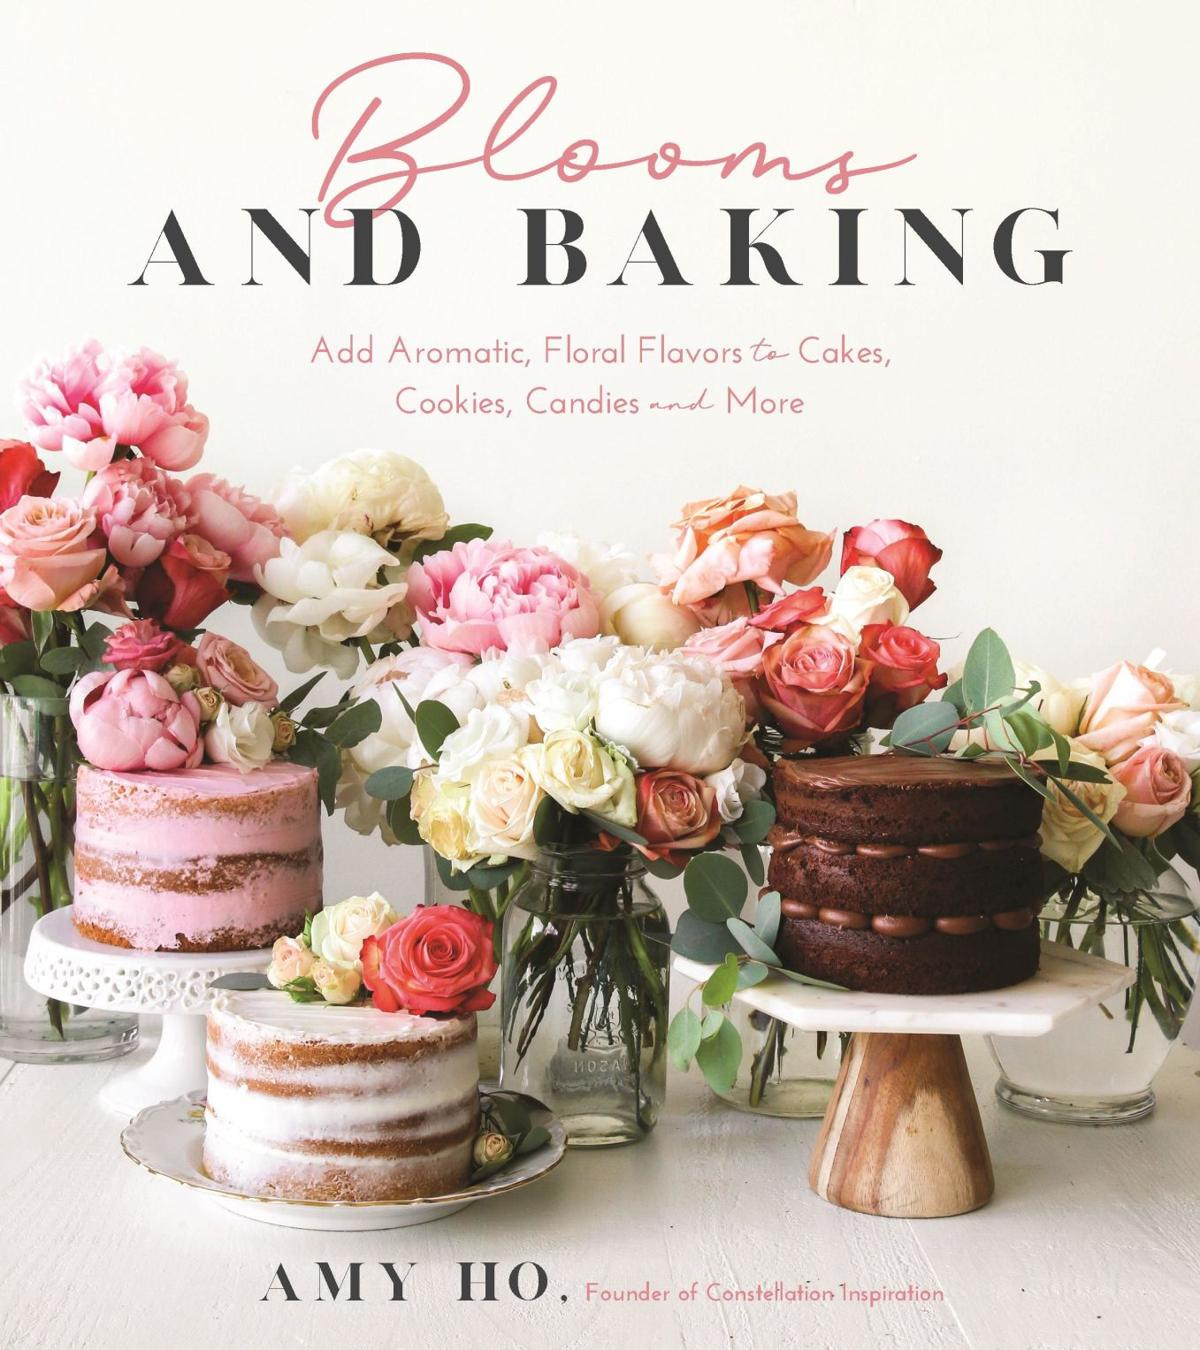 Stephen Fries: Florals add incredible depth to desserts